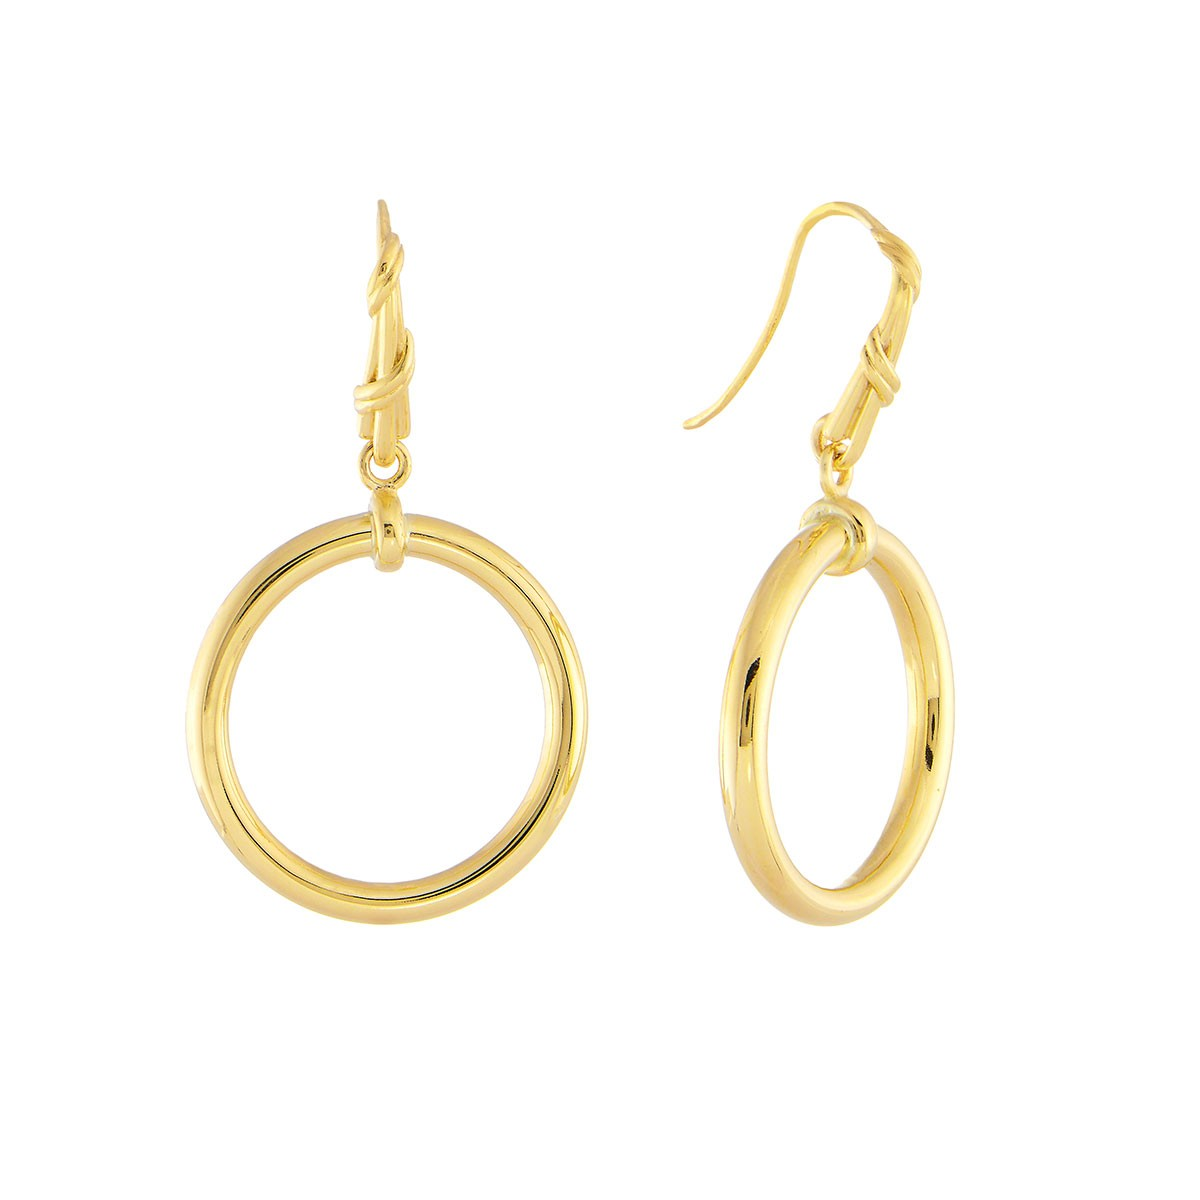 Heritage Mixed Link Circle Earrings in 18K yellow gold